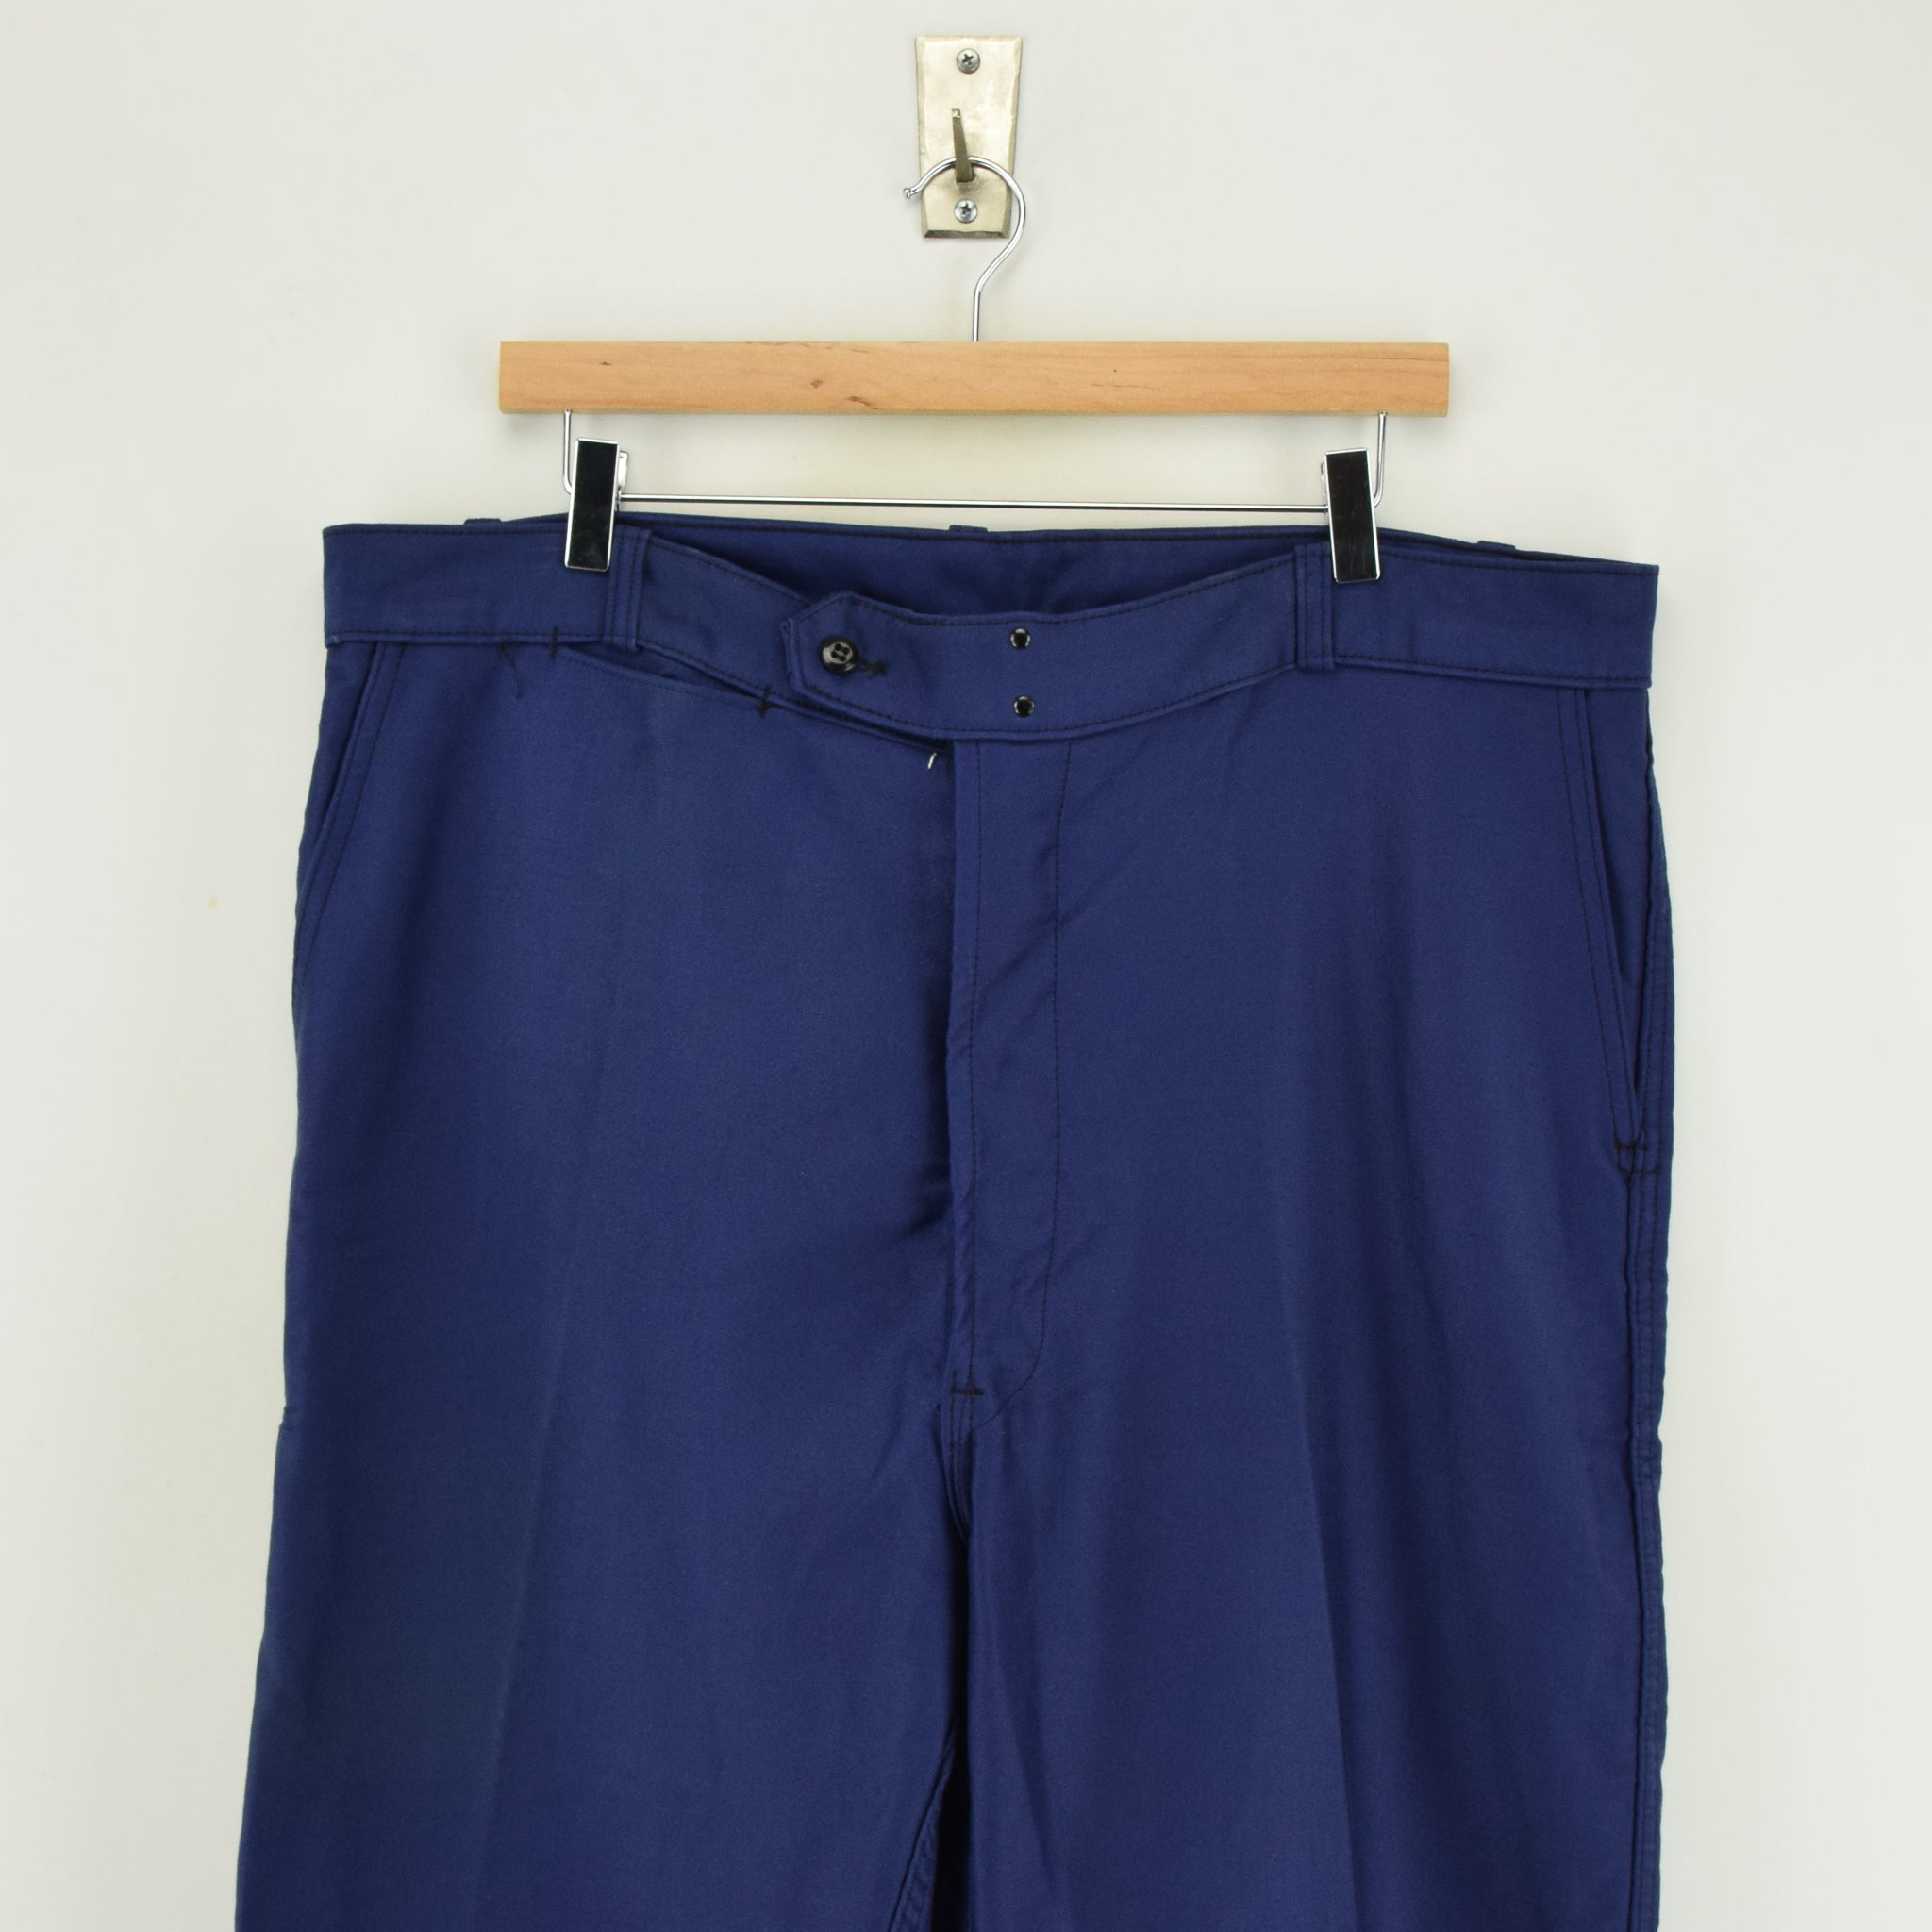 Vintage Adolphe Lafont Workwear Blue French Work Trousers 38 W 32 L front waist